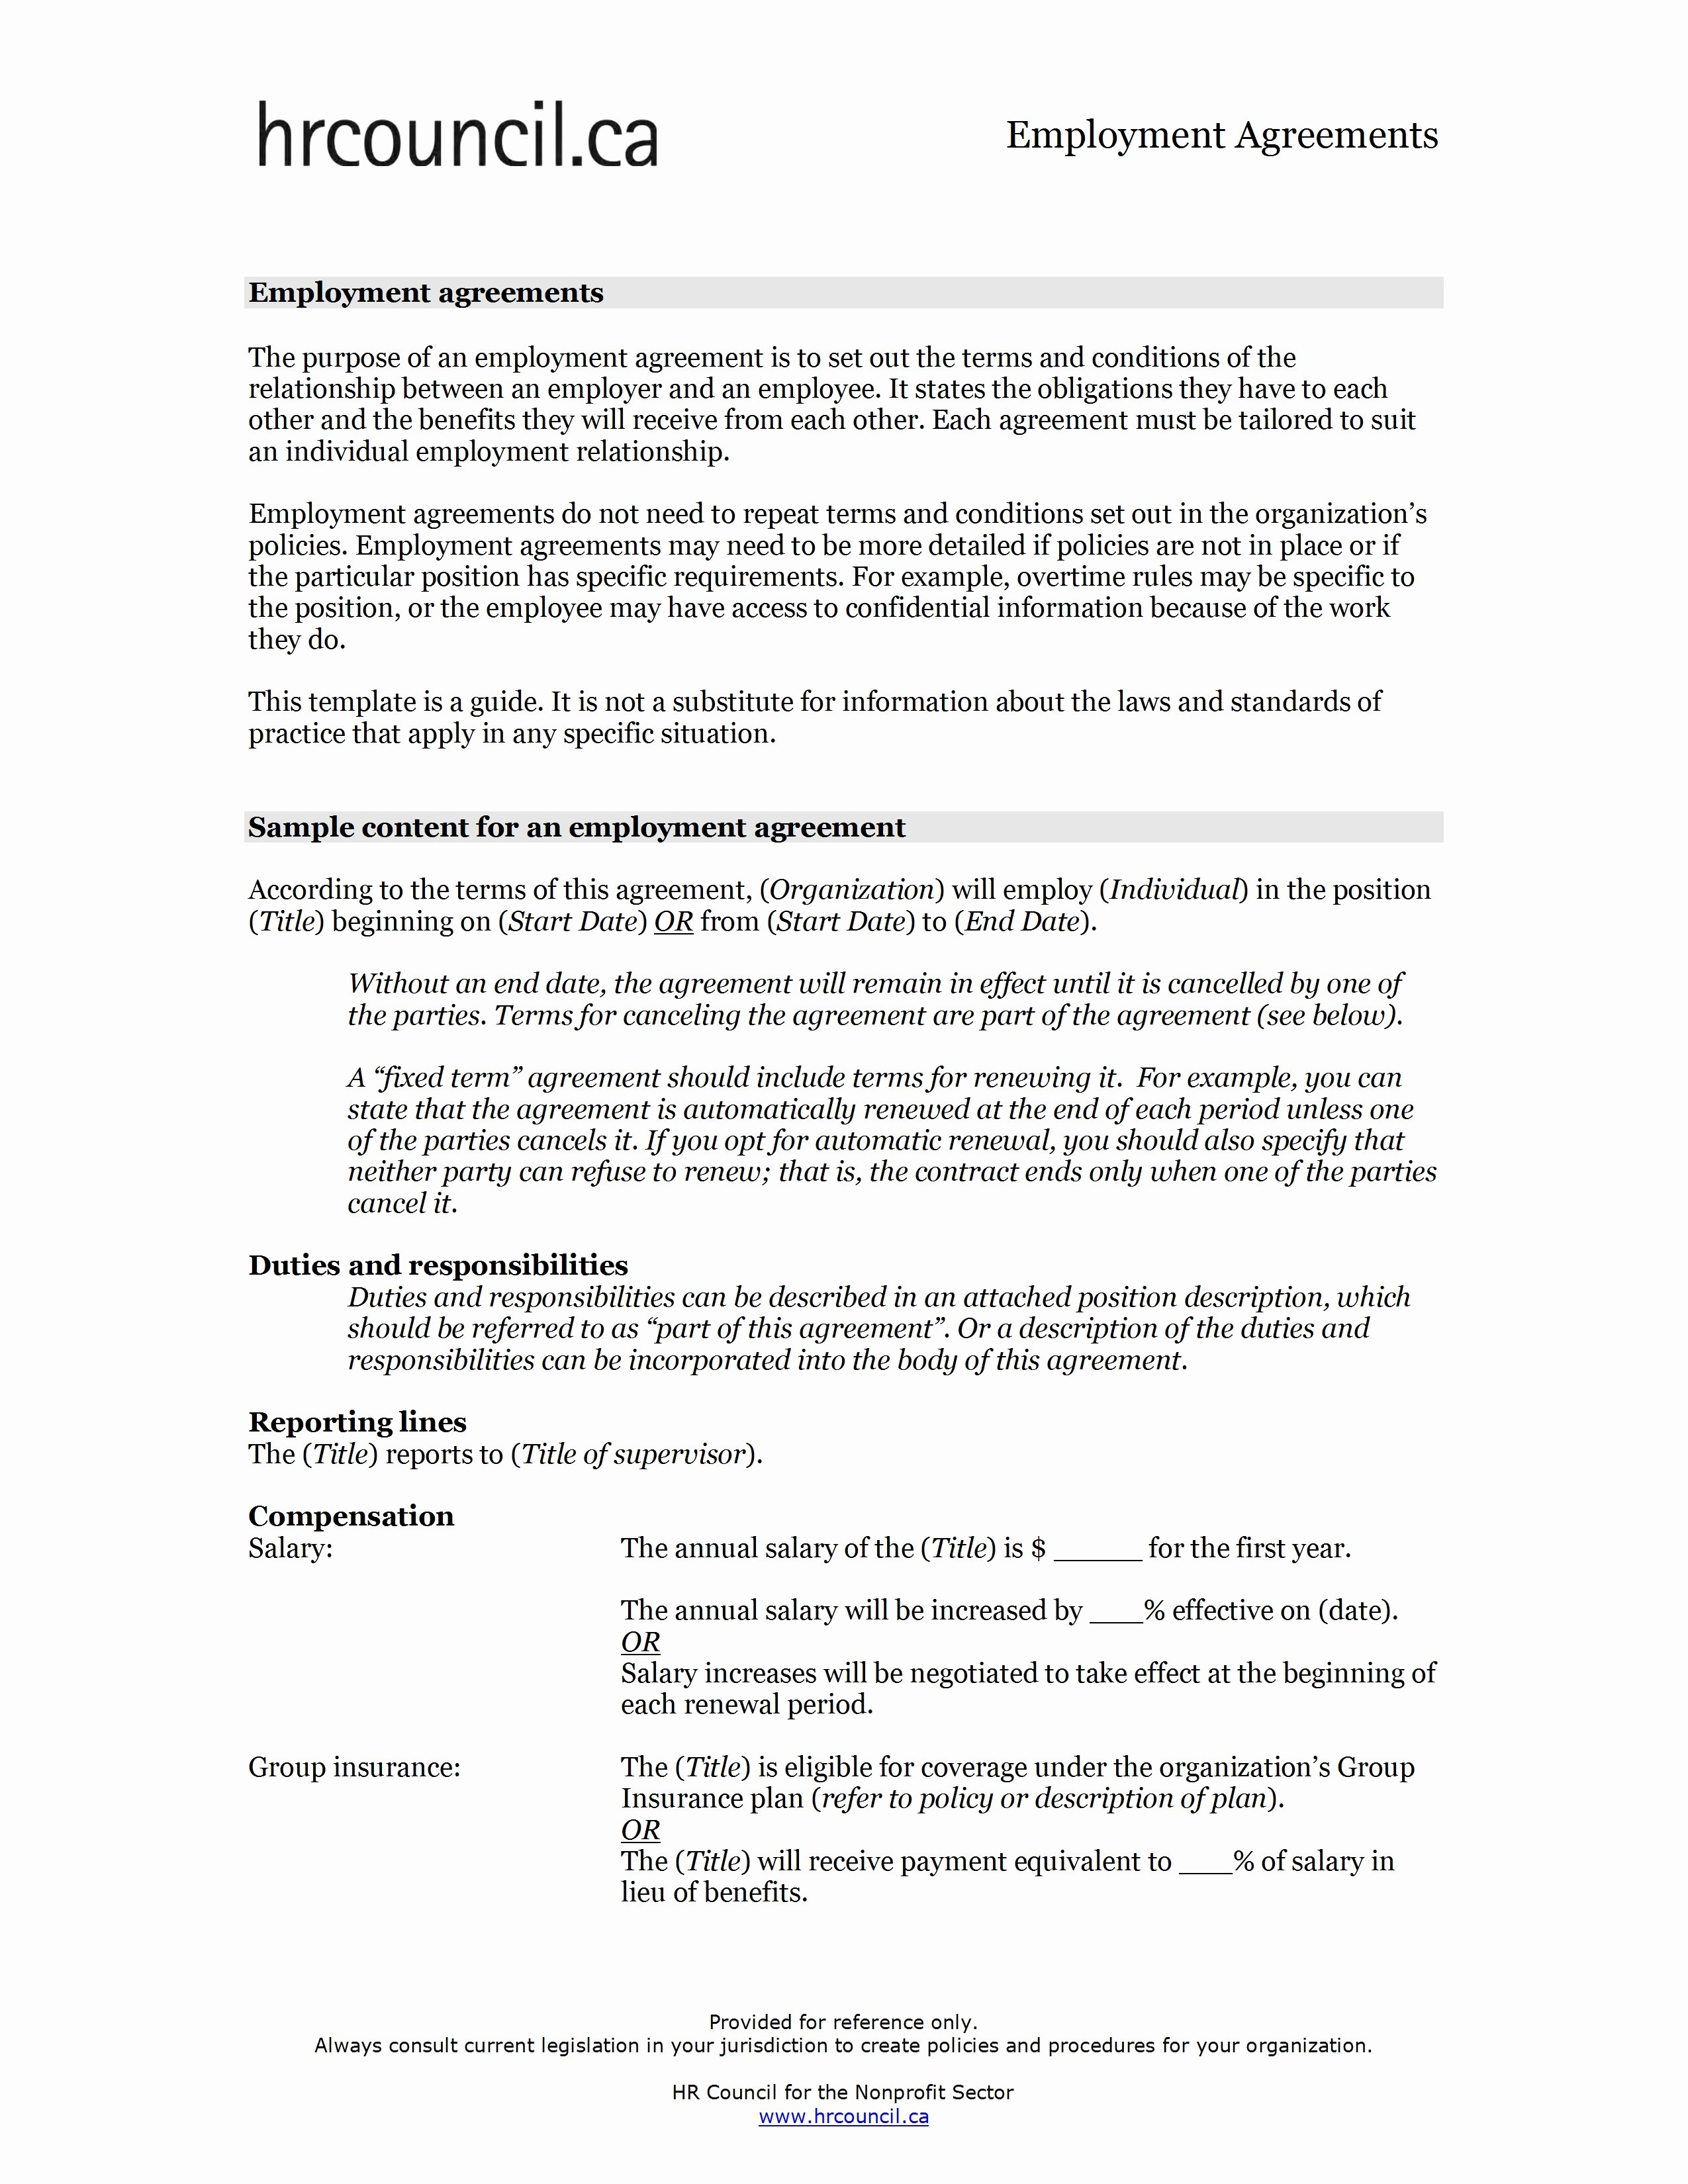 Employment Agreement Template Word New Employment Contract Sample